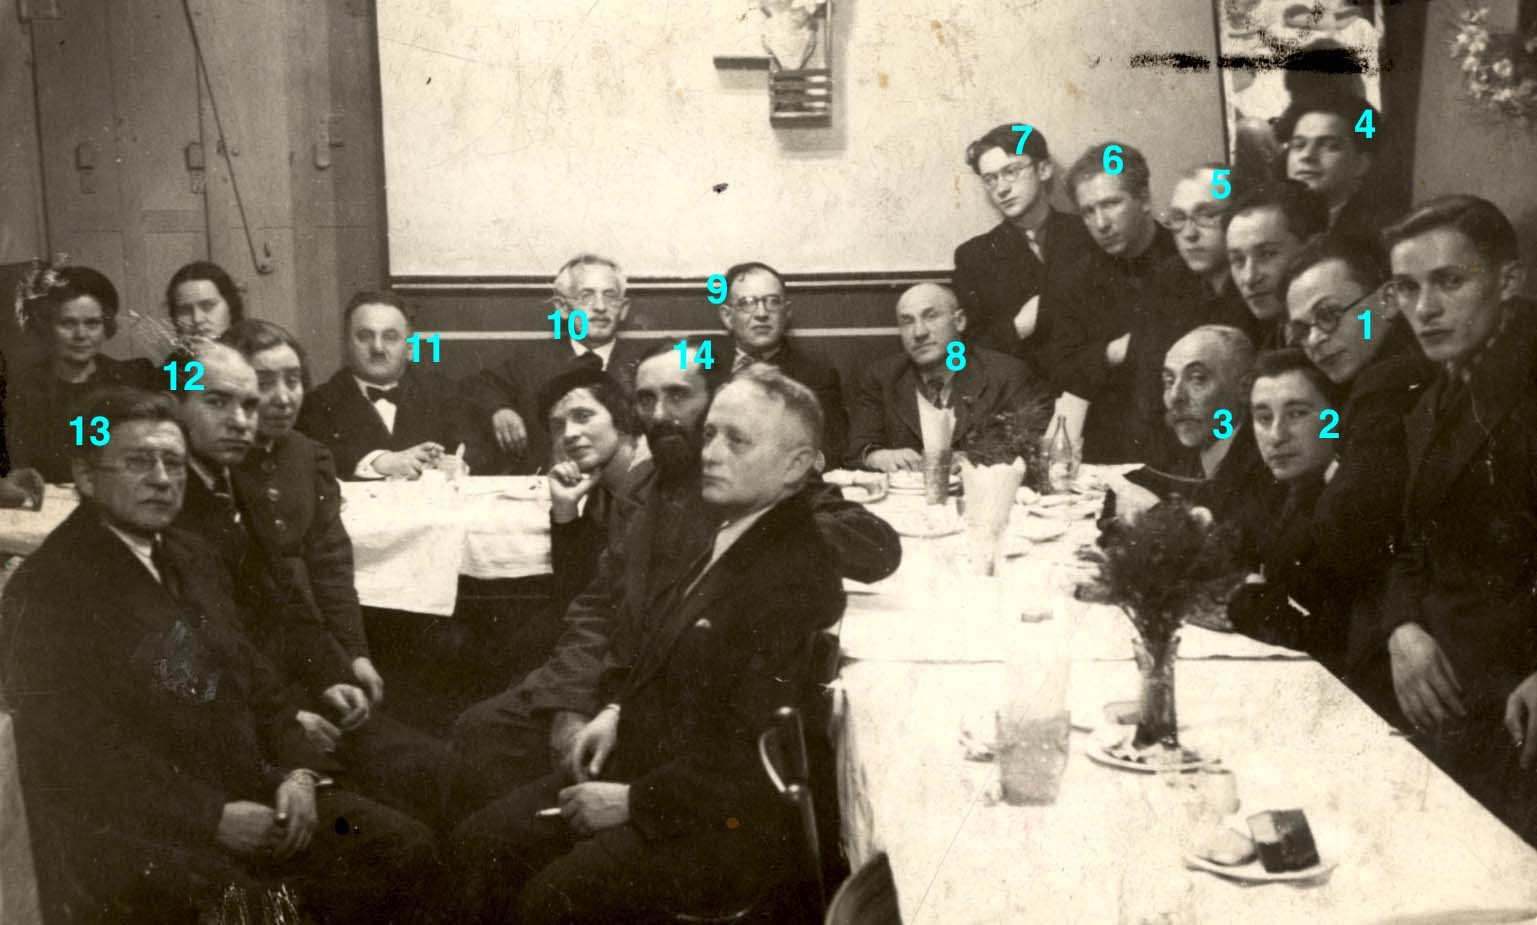 <p>The same photograph of Yiddishists at Velfke's restaurant, numbered for identification. Source: Yad Vashem, Photo Archive, Jerusalem, Archival Signature&nbsp;3380/296.</p>